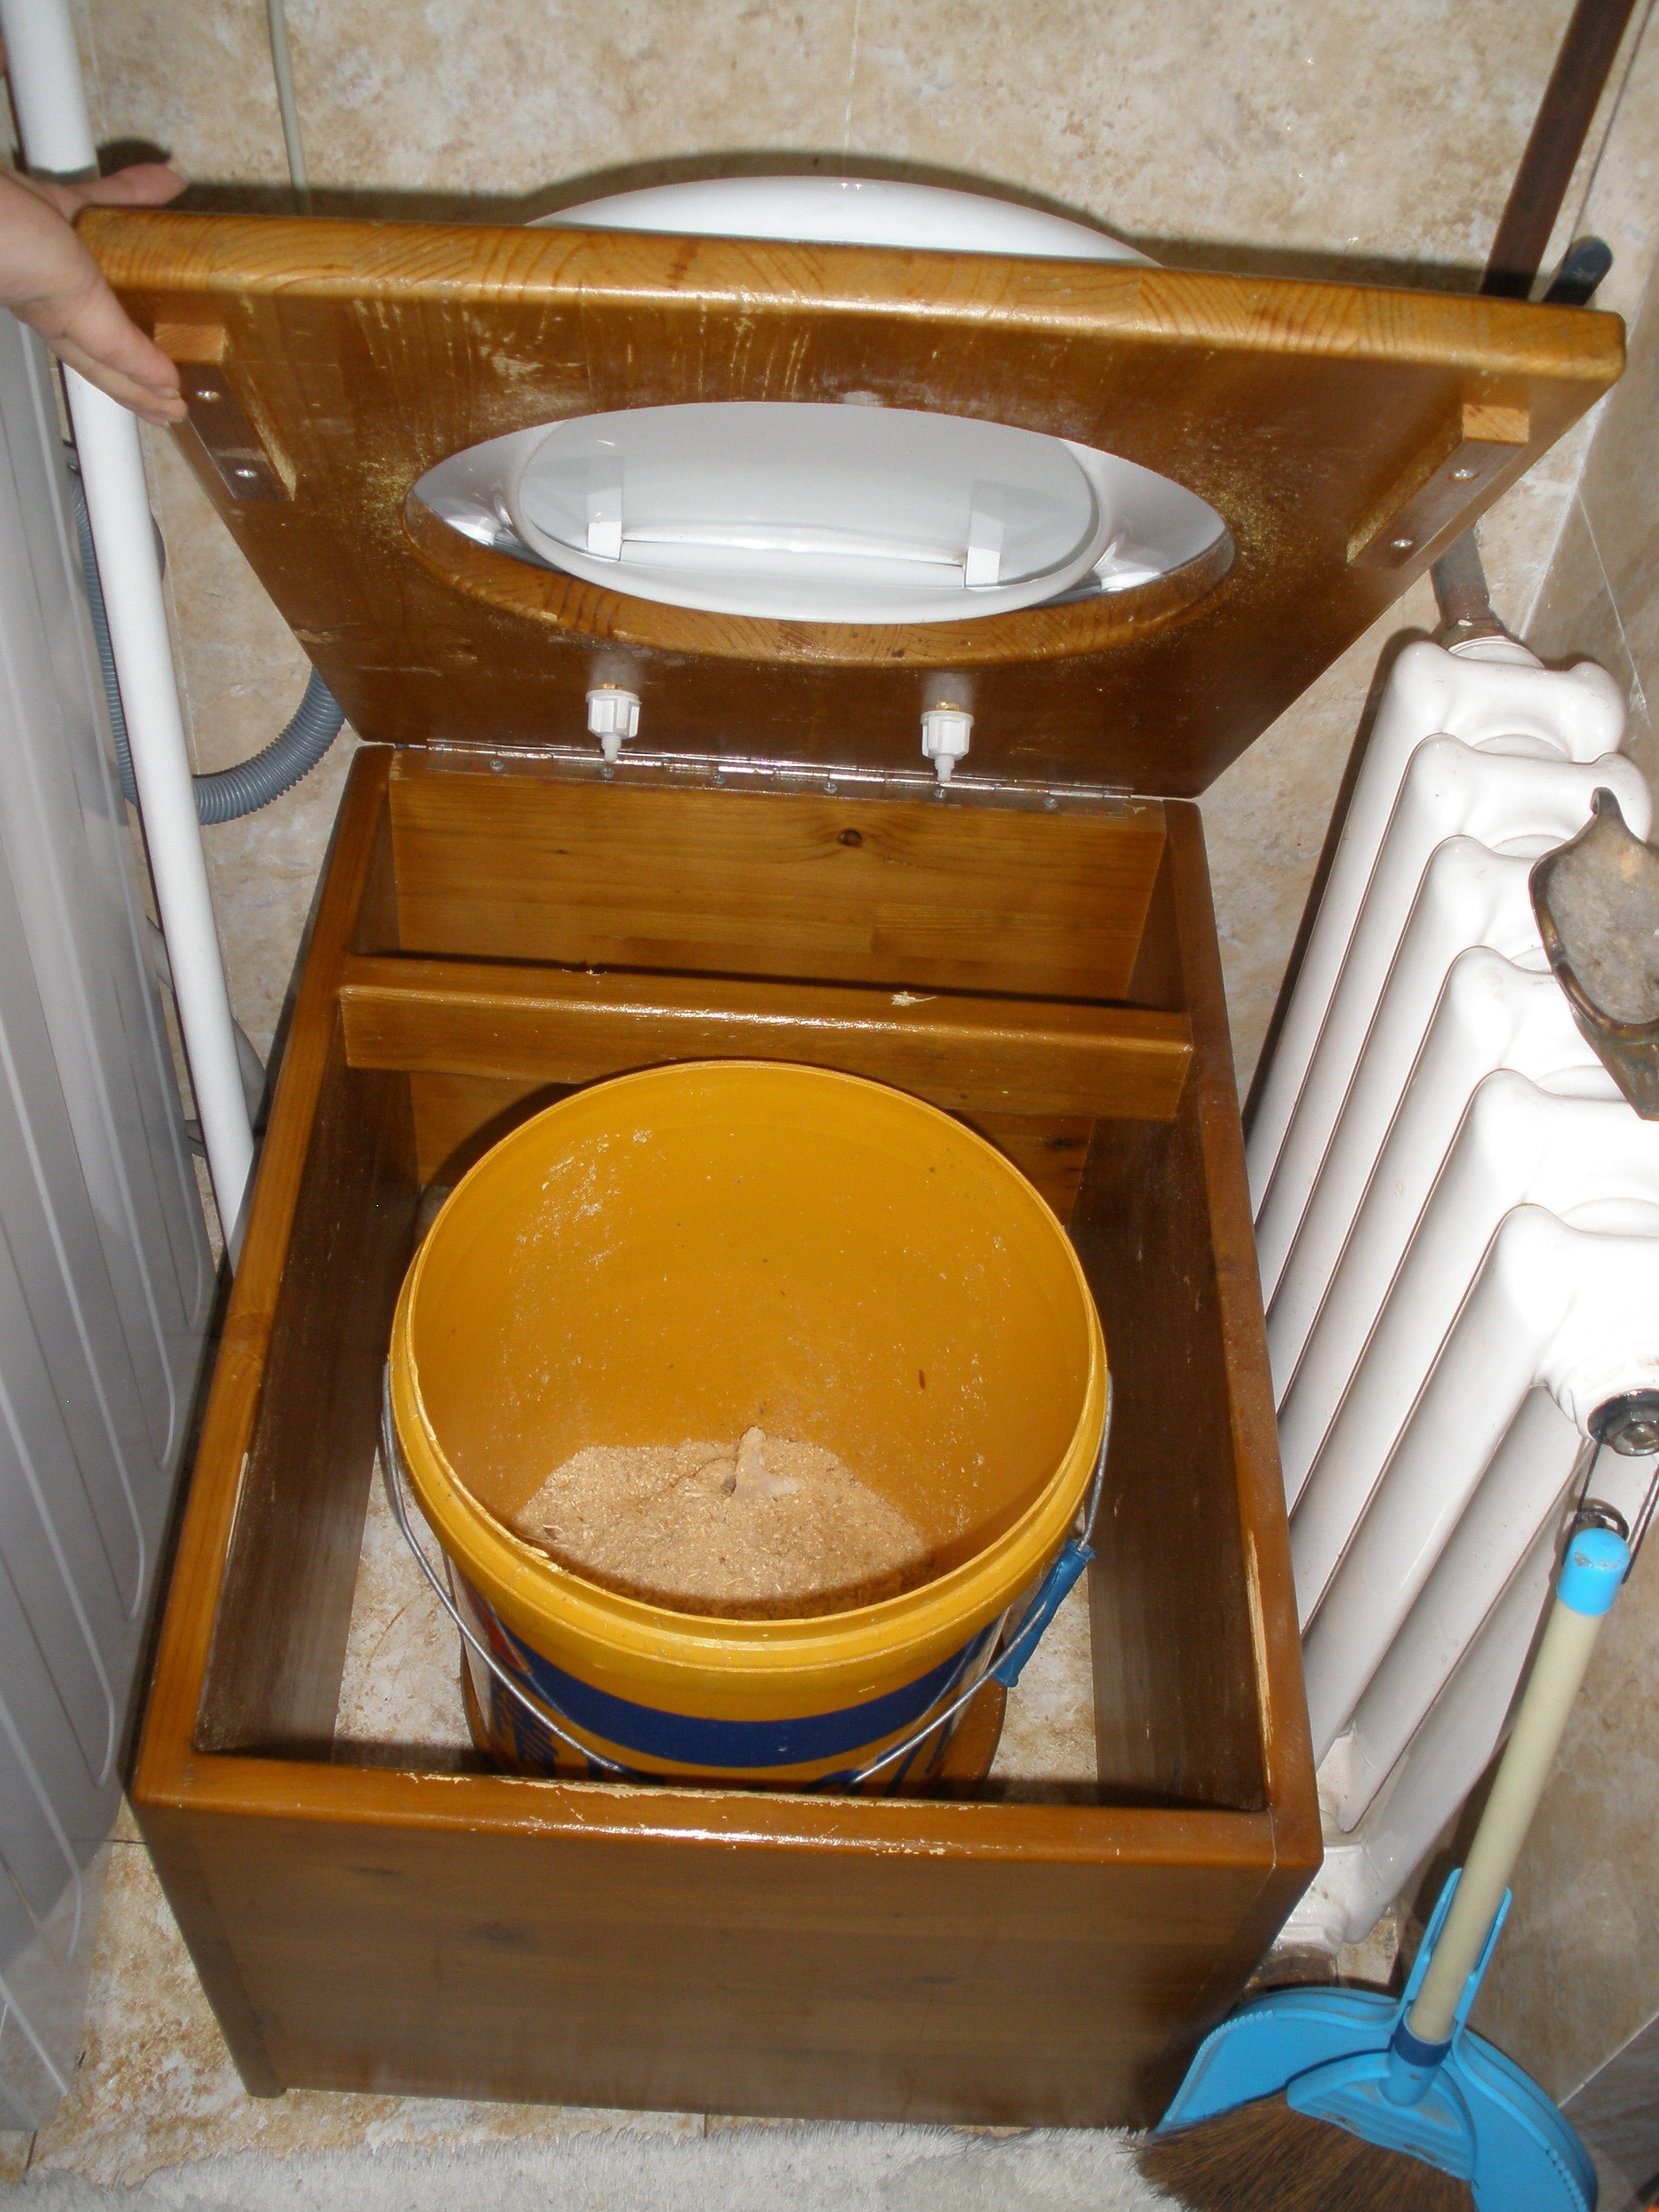 Best ideas about DIY Composting Toilet . Save or Pin DIY Portable post Toilet System for Under $50 Tiny Now.